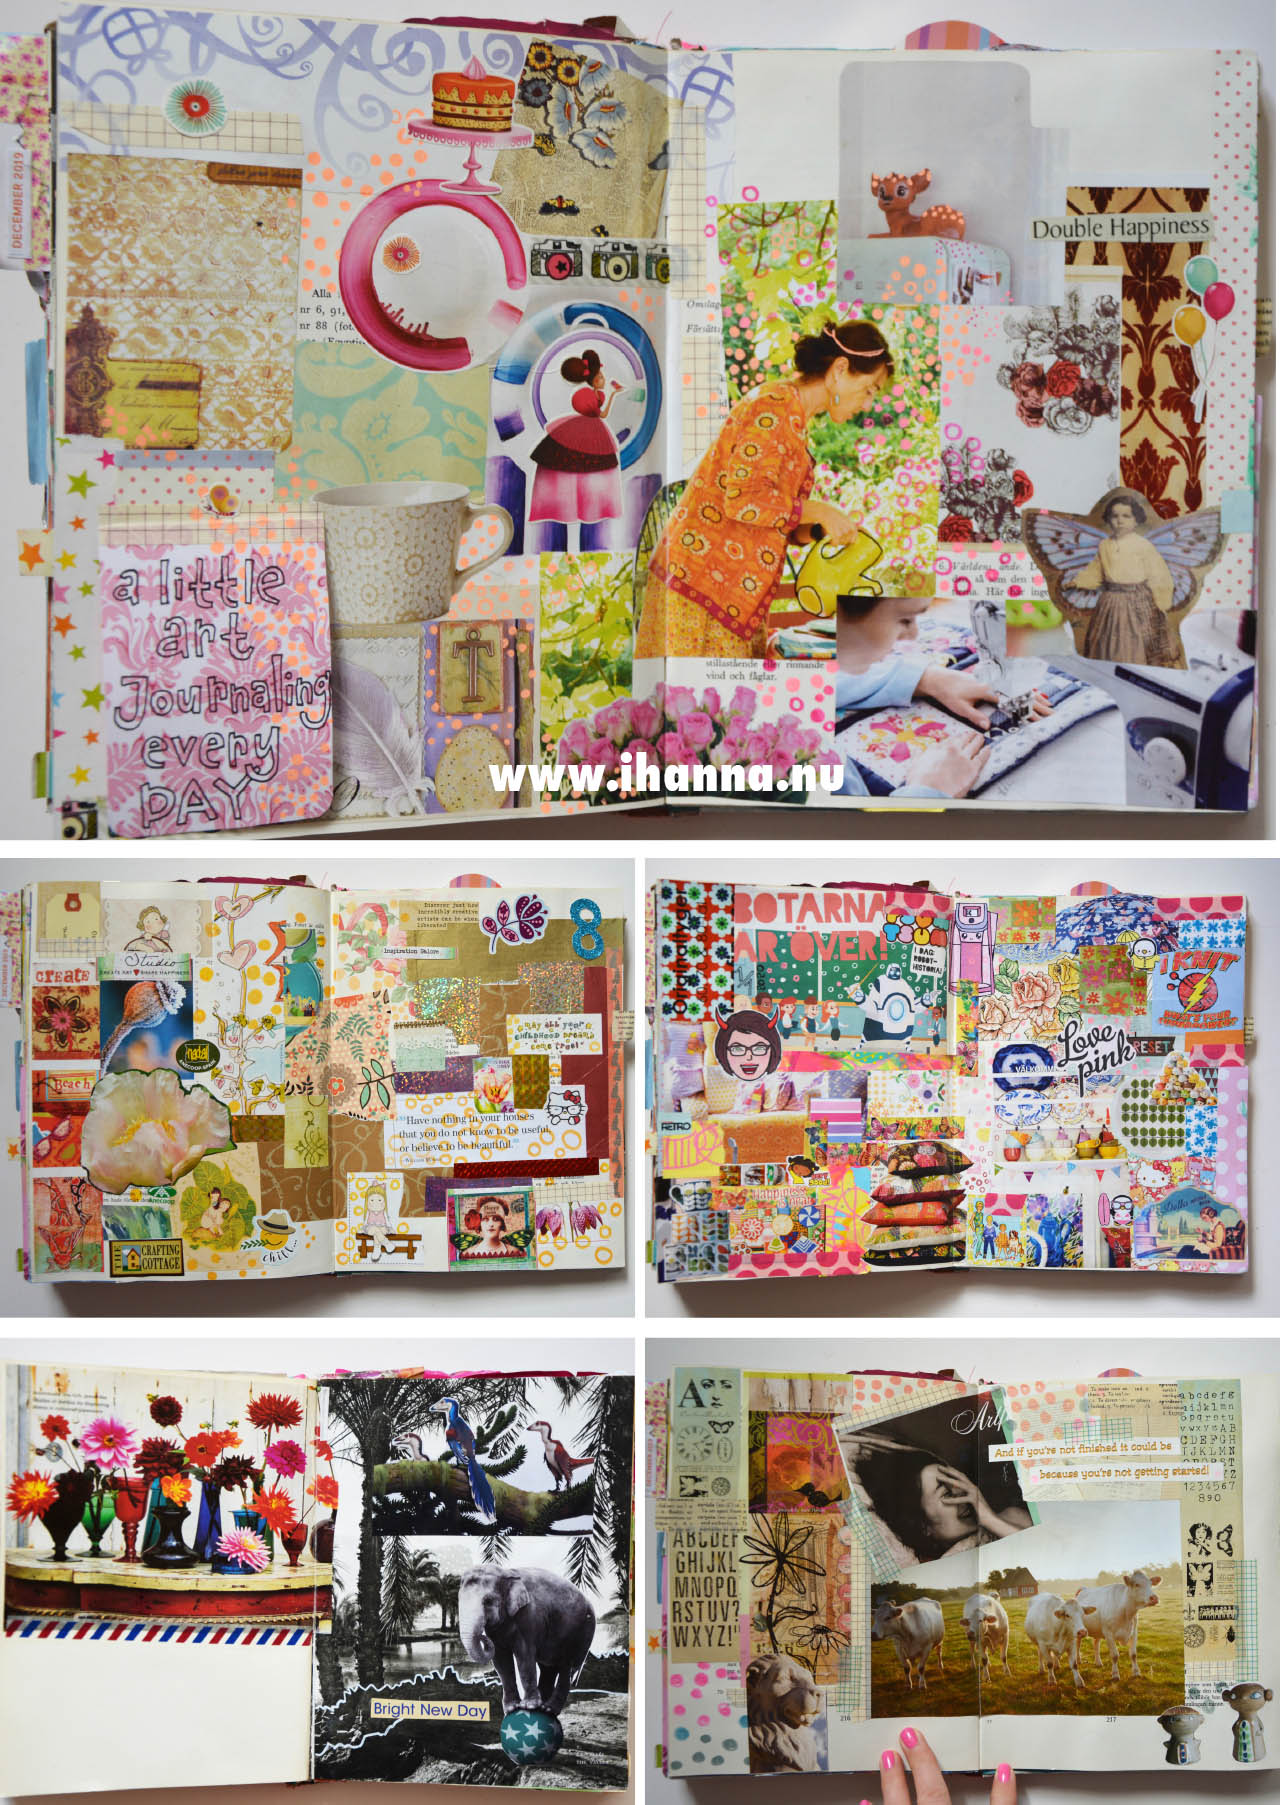 More of the many collage pages in iHanna's Art Jouranl see flip-through on the site www.ihanna.nu